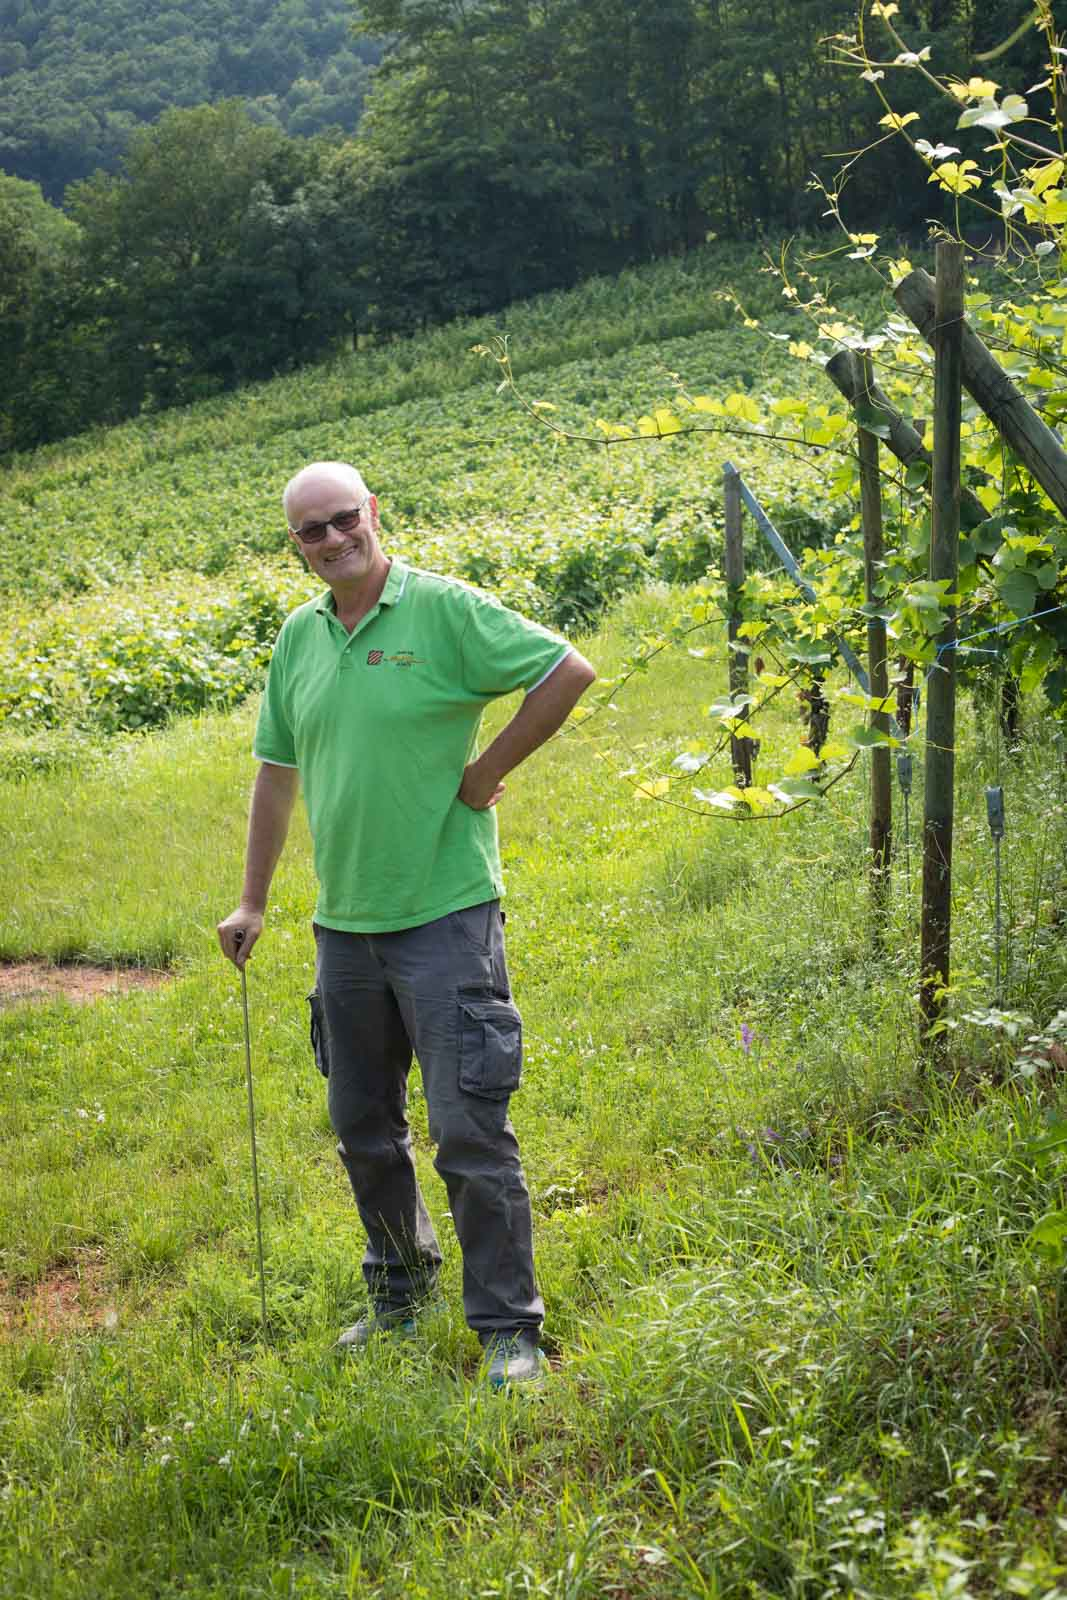 Maurice Barthelmé in the lush vineyards of Wettolsheim, Alsace. ©Kevin Day/Opening a Bottle